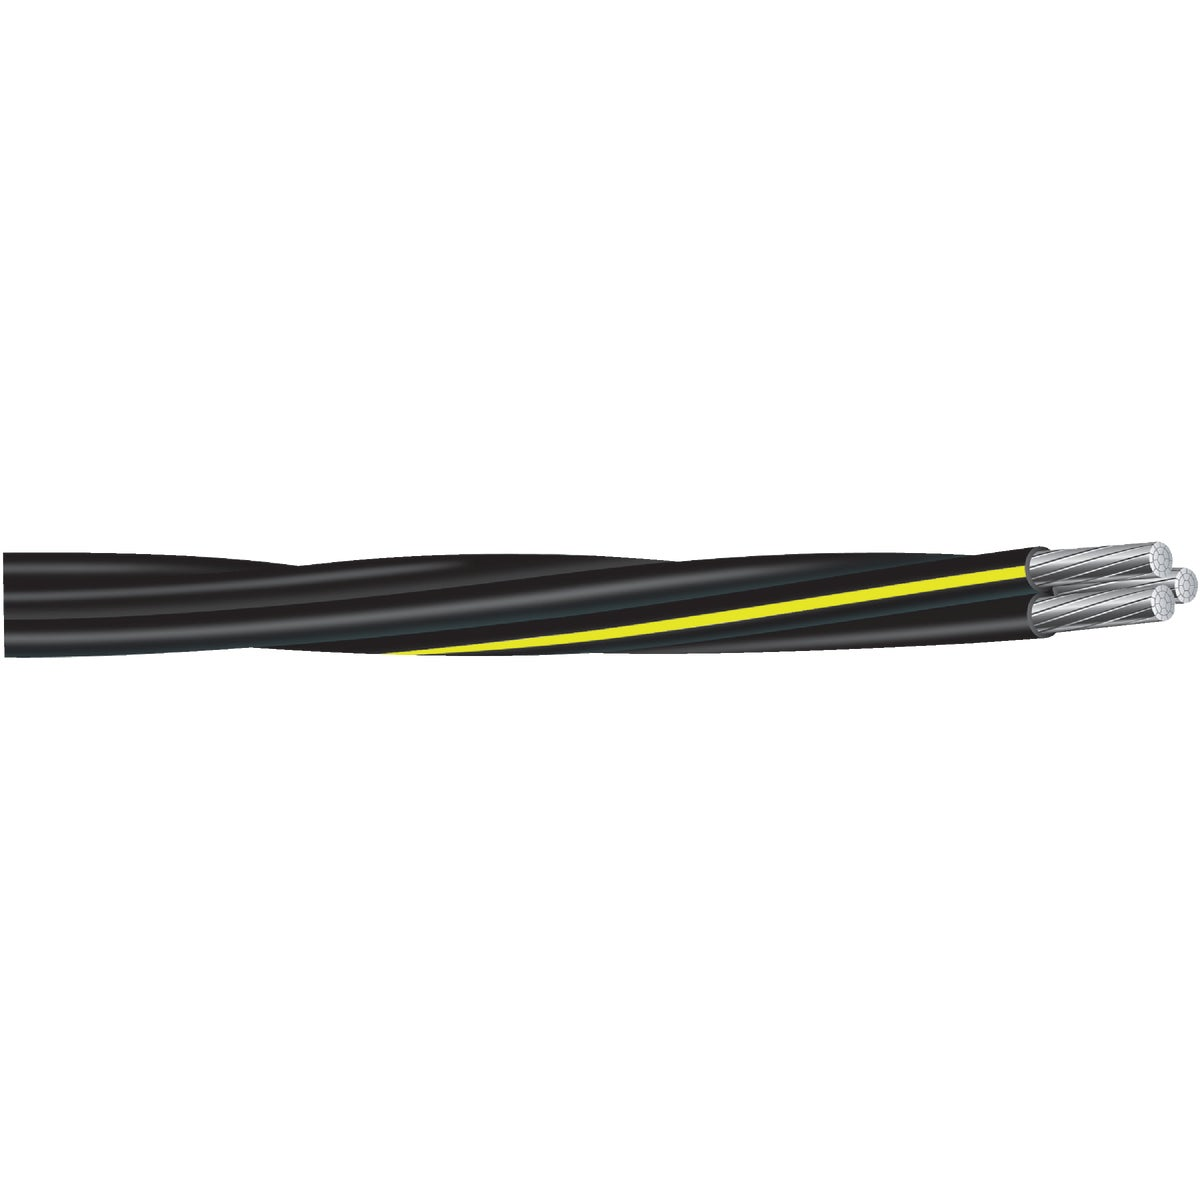 500' 2-2-2 UD ALU CABLE - 55417407 by Southwire Company